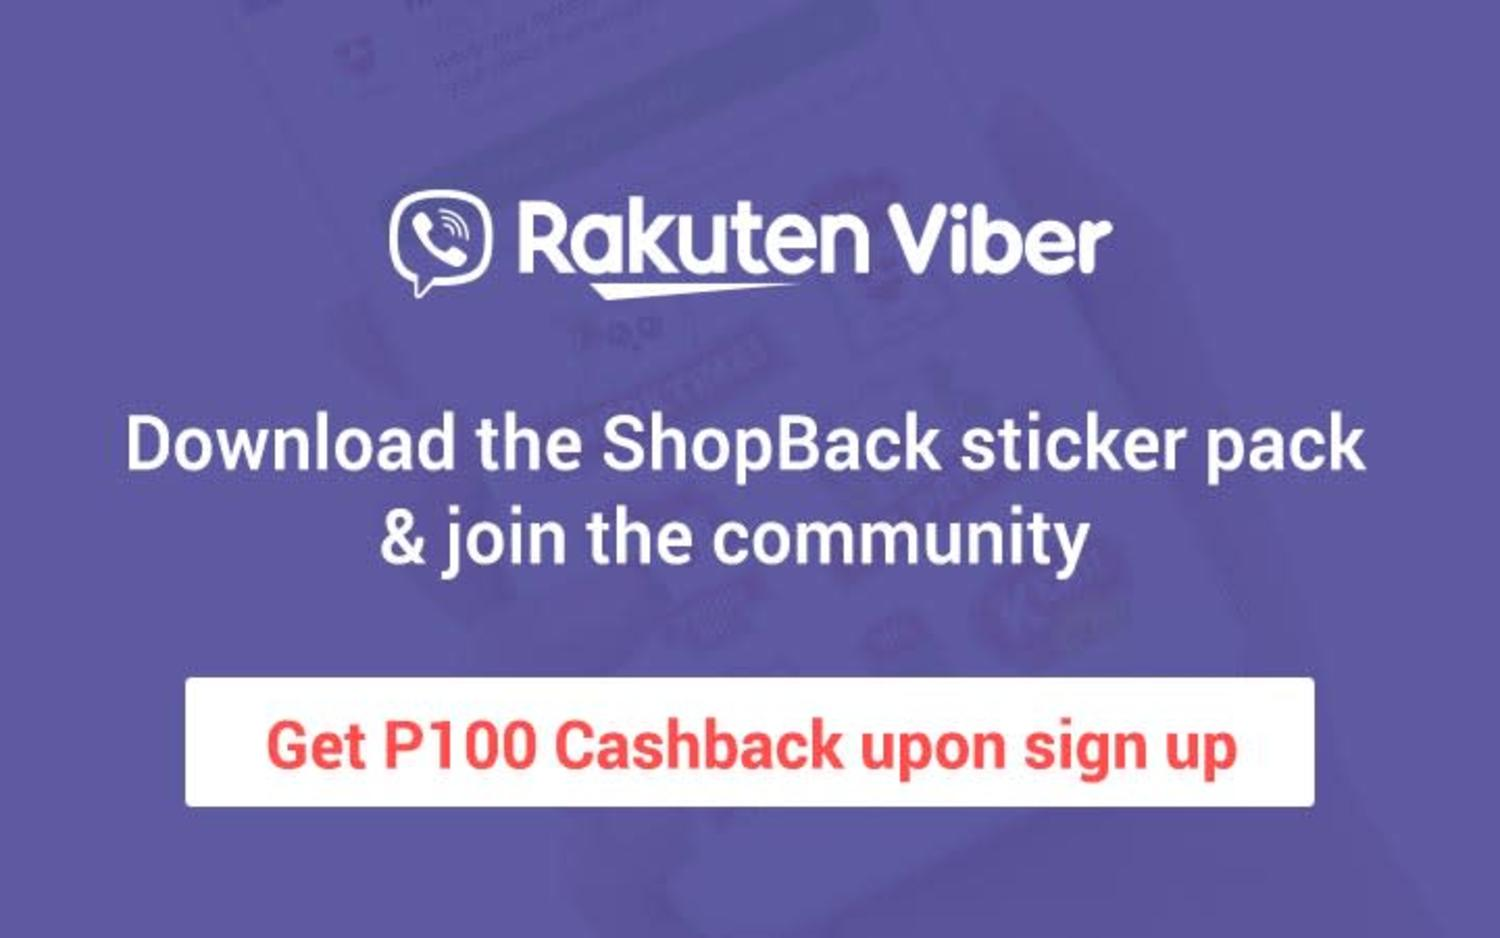 Rakuten Viber: Download the ShopBack sticker pack & join the community